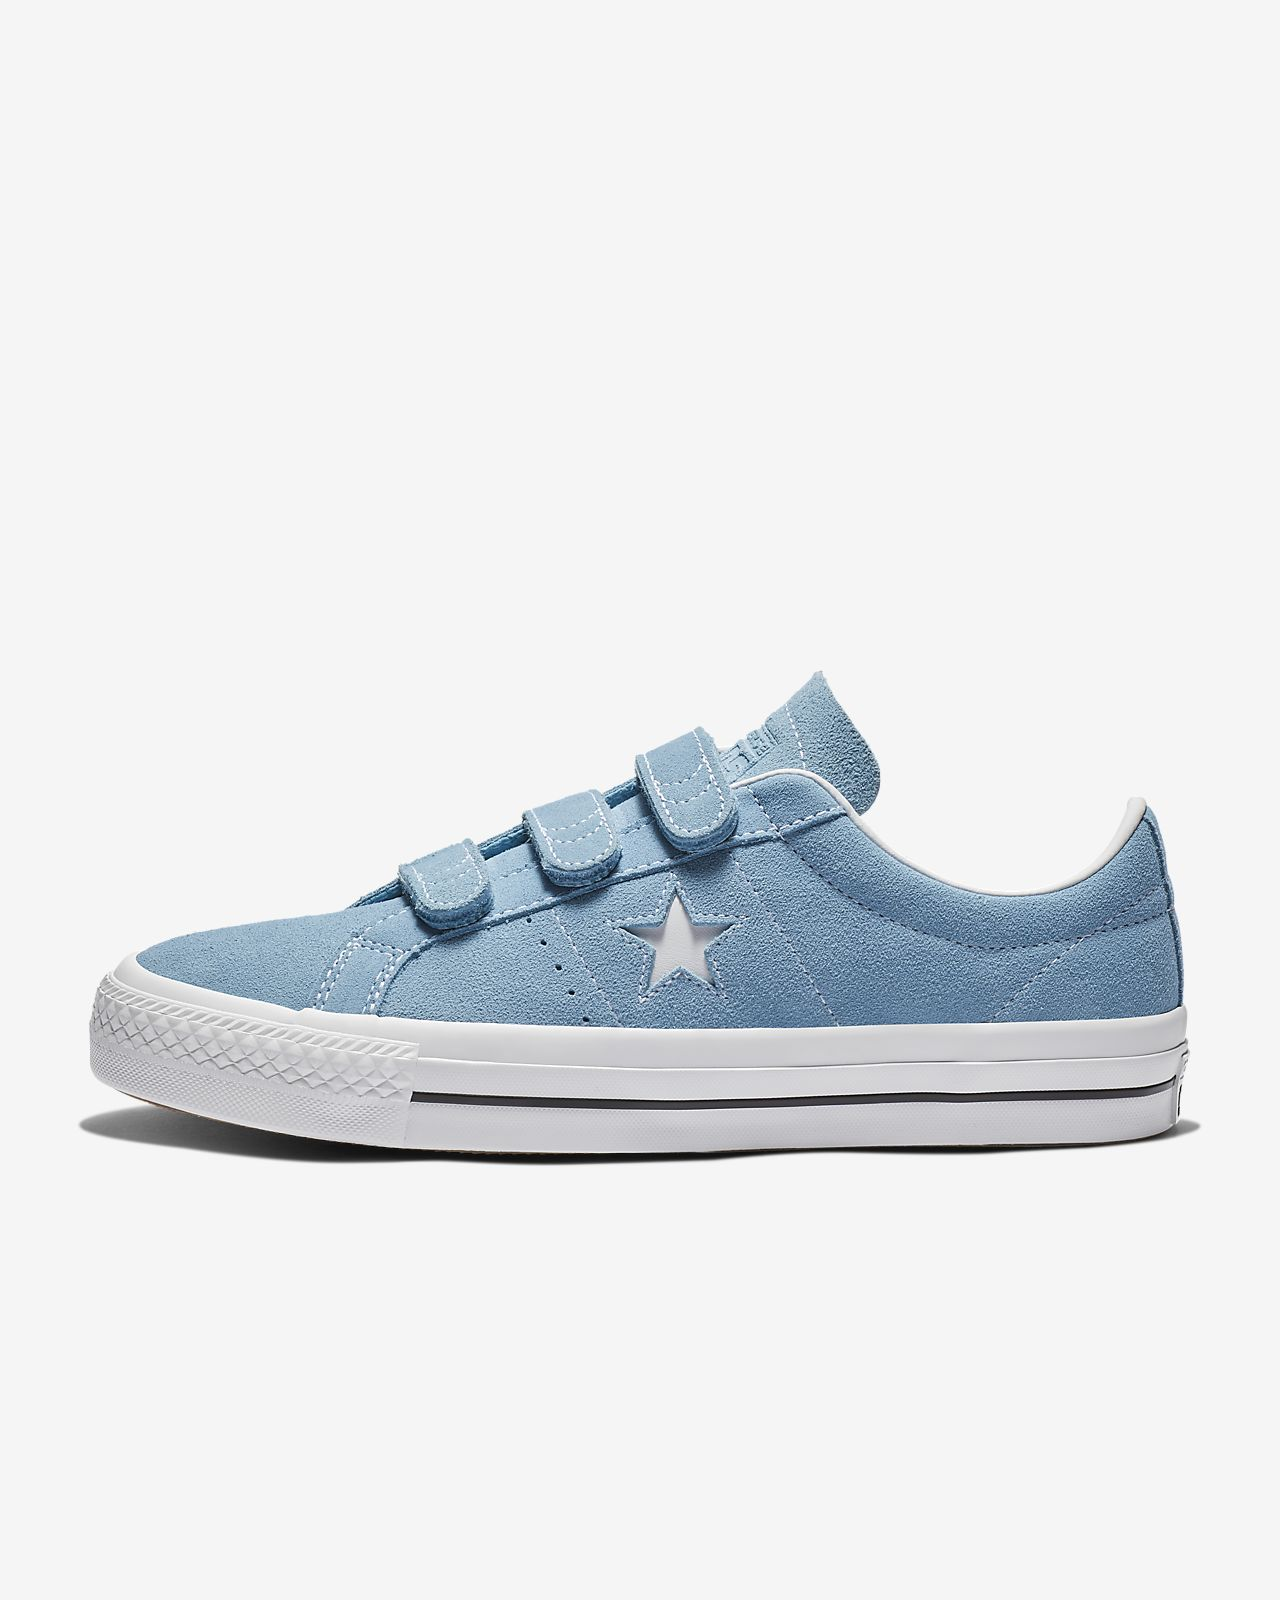 322af93ae09 ... new zealand converse one star pro hook and loop suede low top unisex  skate shoe 78179